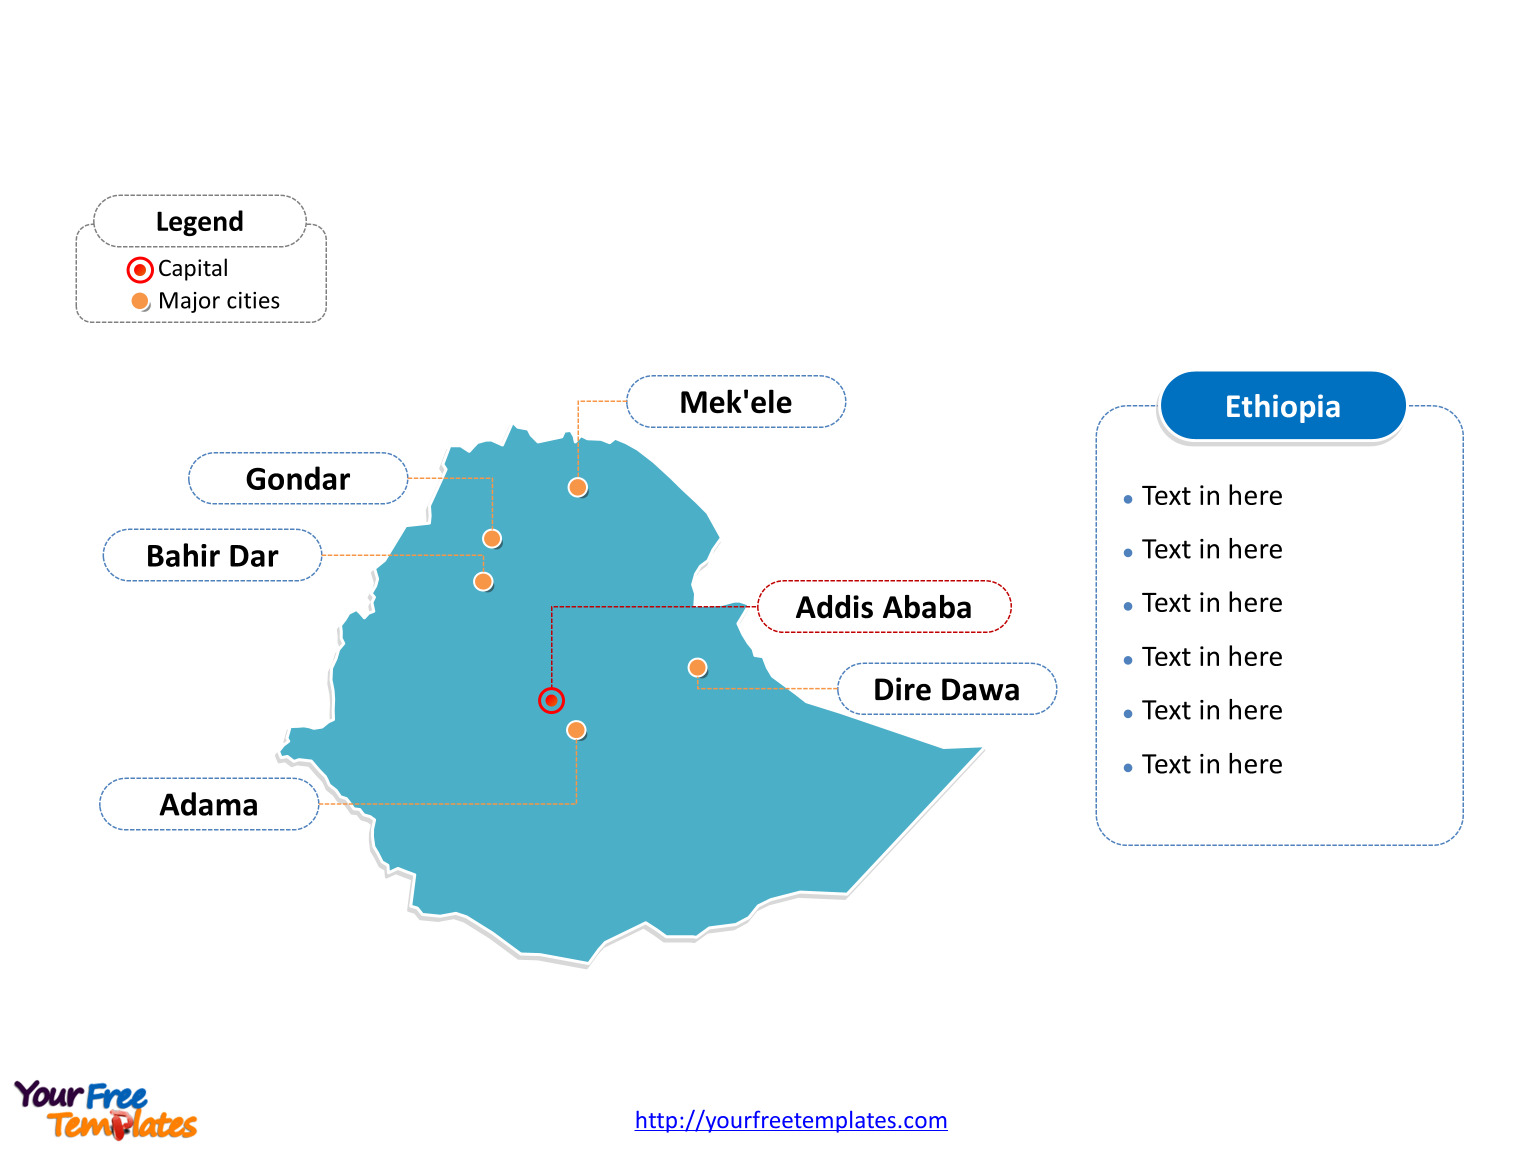 Ethiopia Outline map labeled with cities